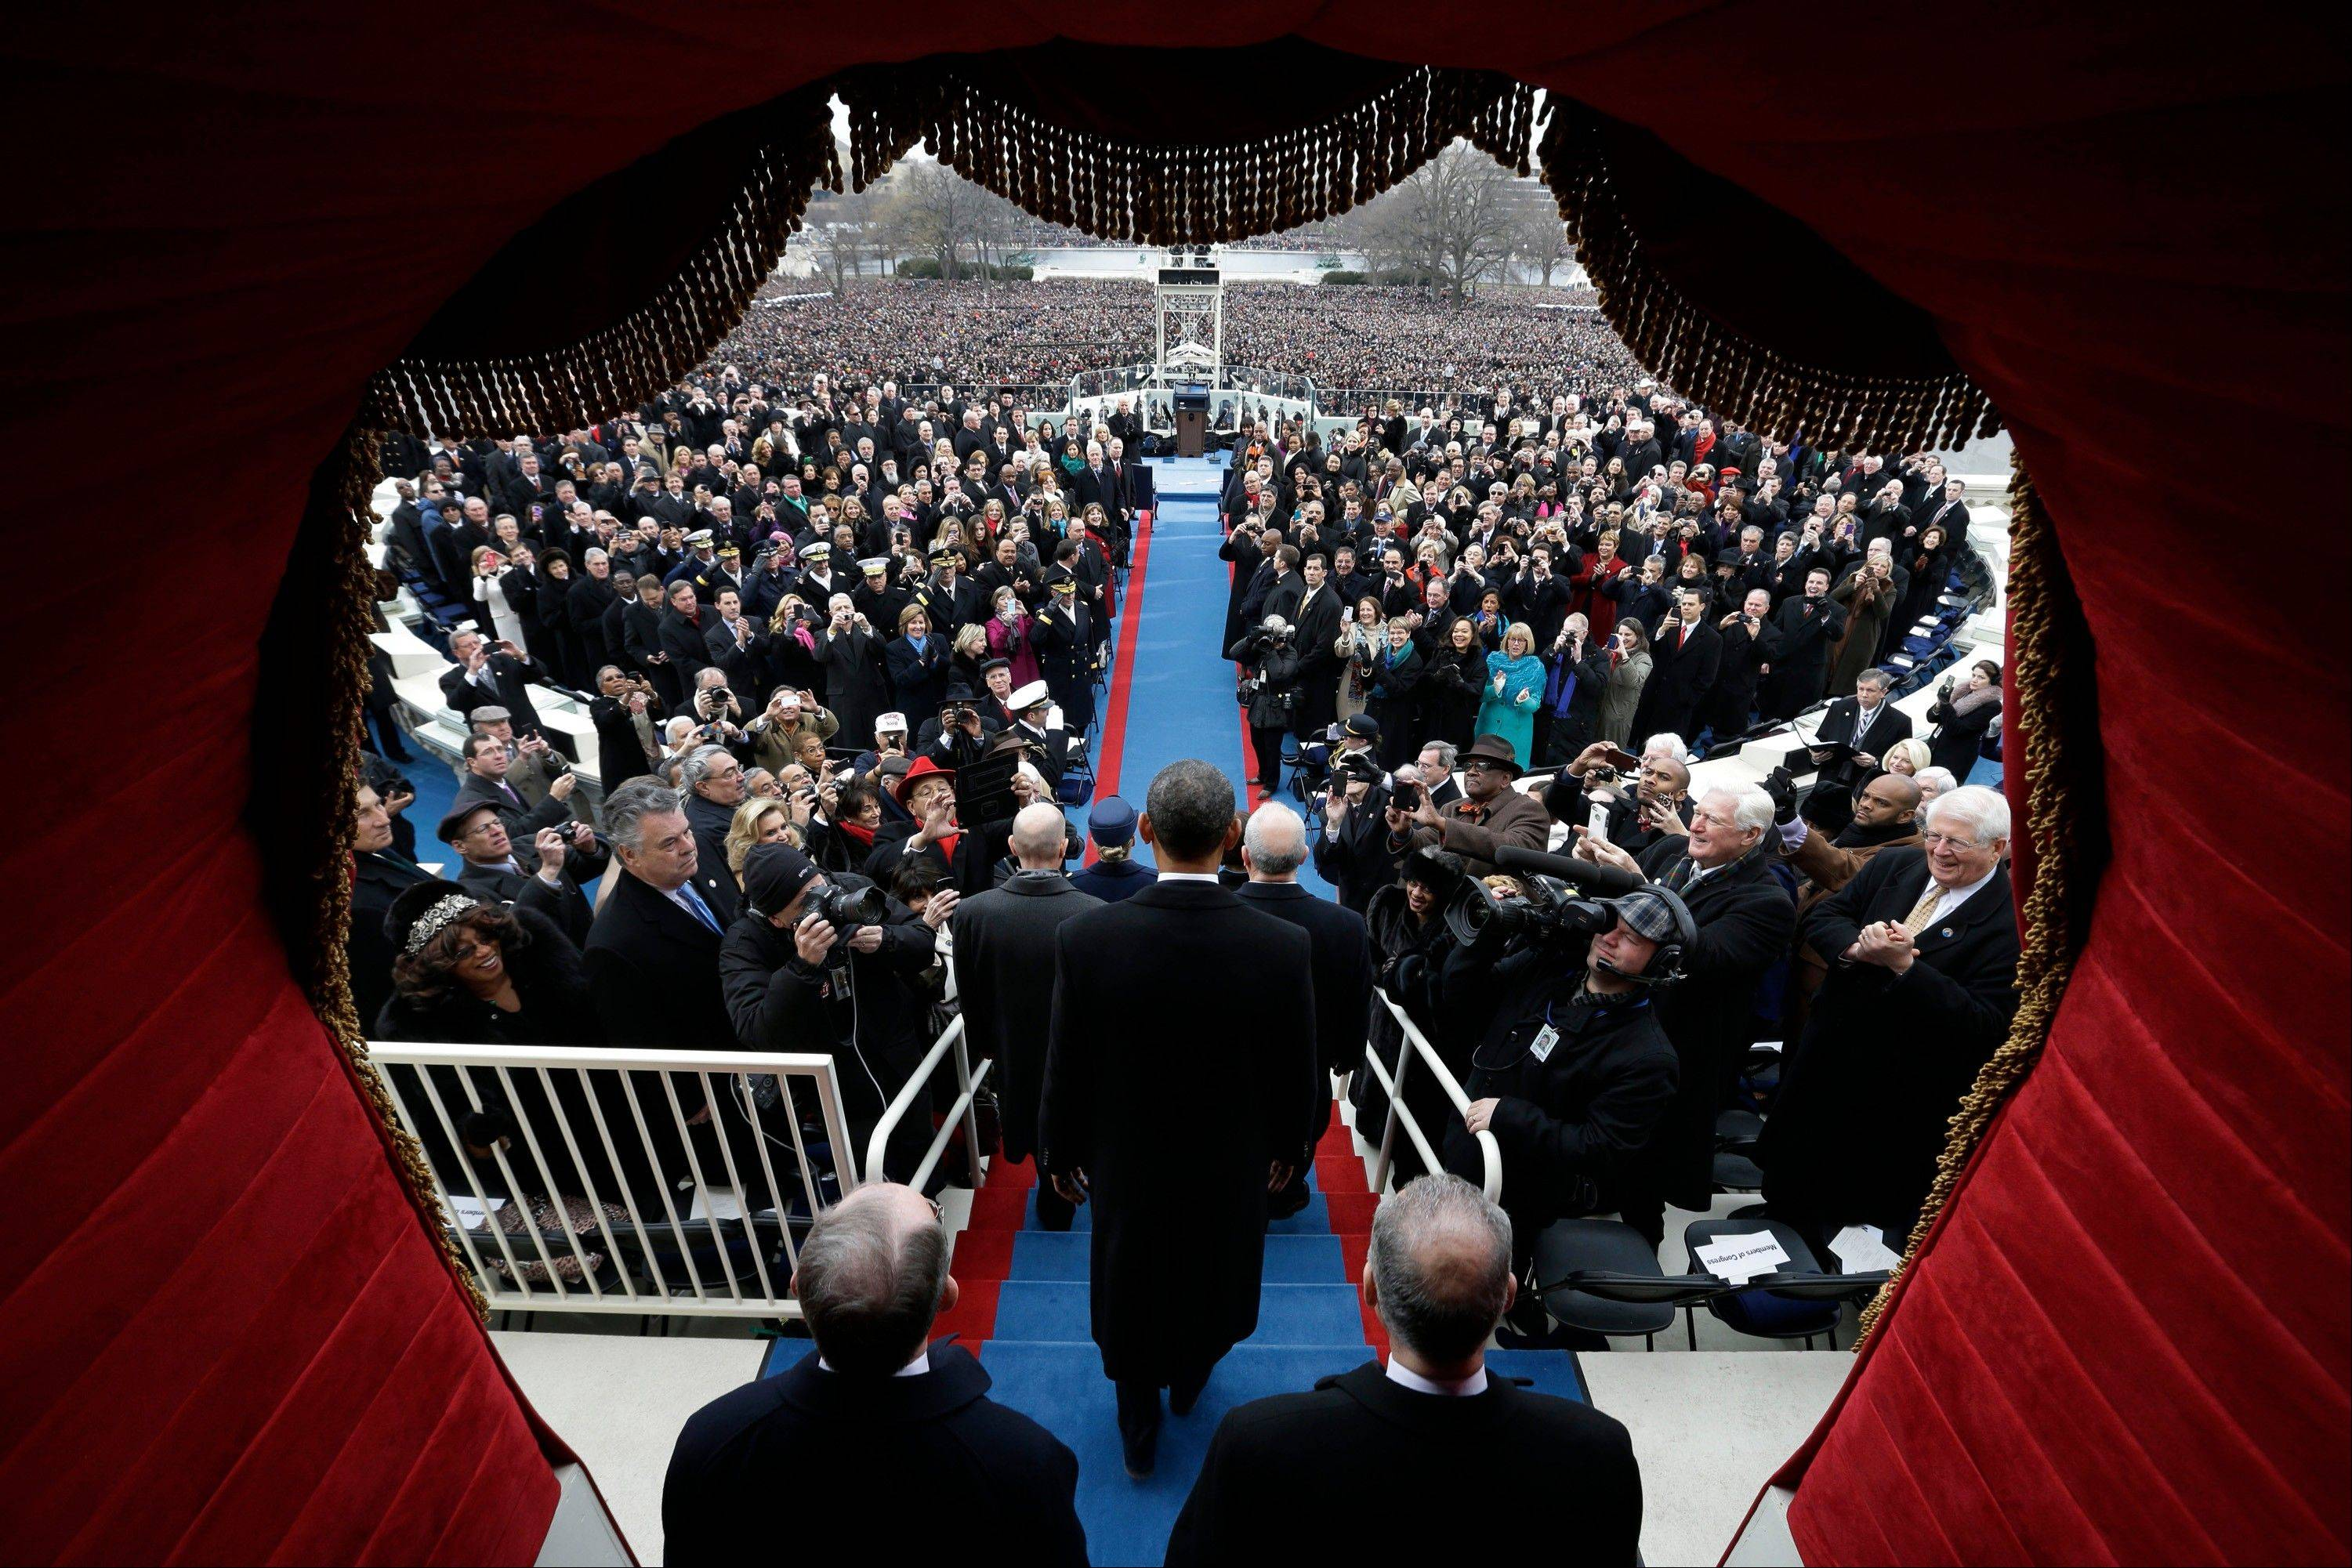 U.S. President Barack Obama arrives for the ceremonial swearing-in at the Capitol during the U.S. presidential inauguration in Washington, D.C., U.S., on Monday, Jan. 21, 2013.